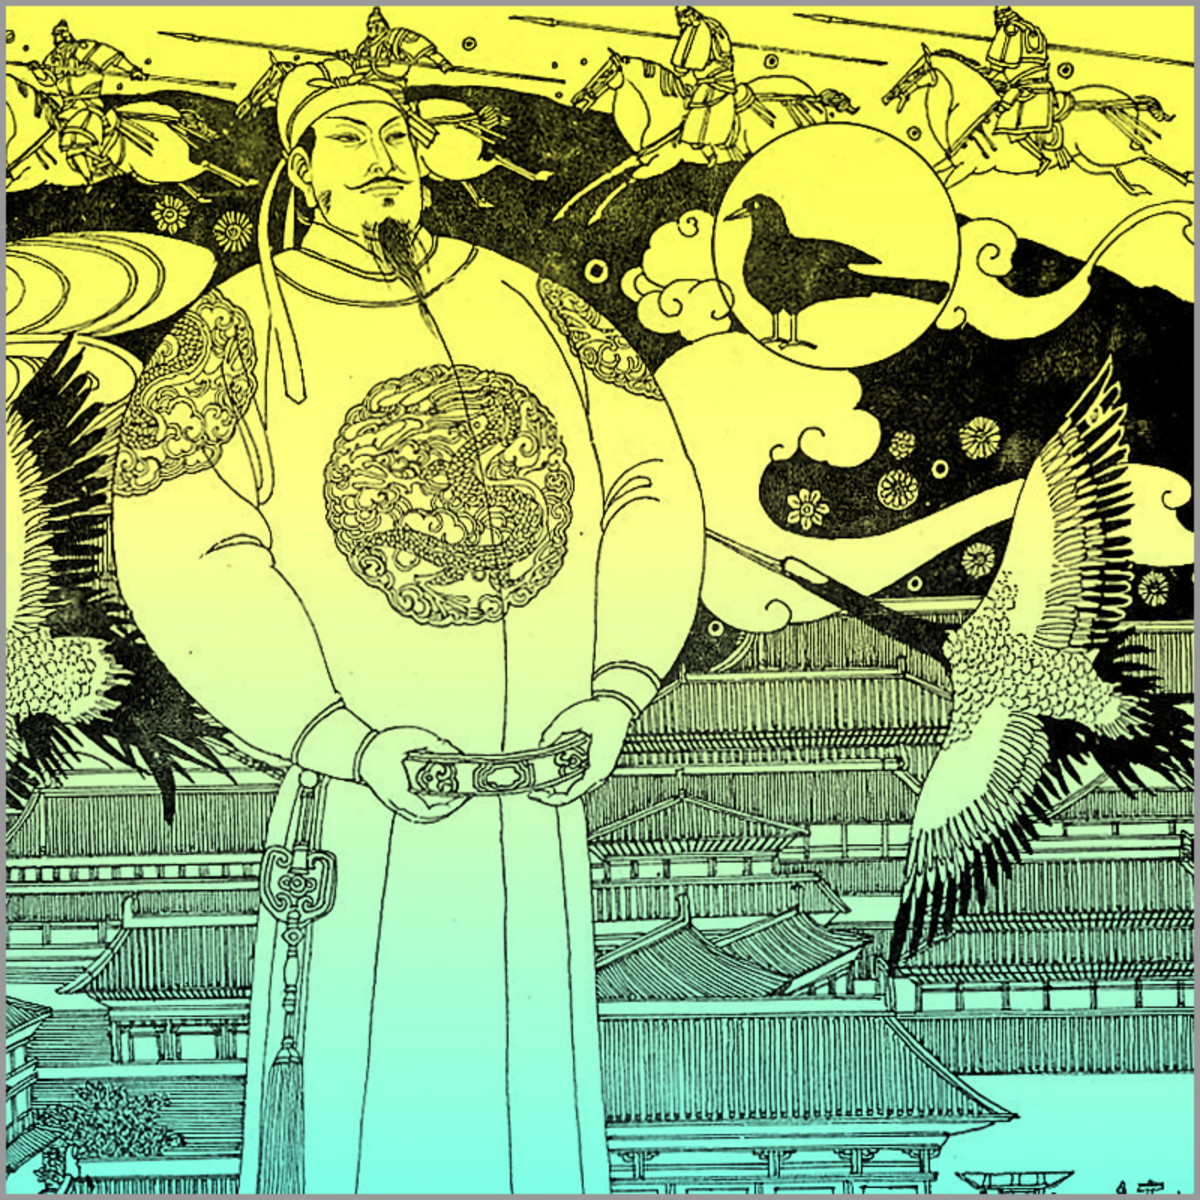 Tang Taizong. Some Chinese historians consider him the greatest Chinese emperor of all times.